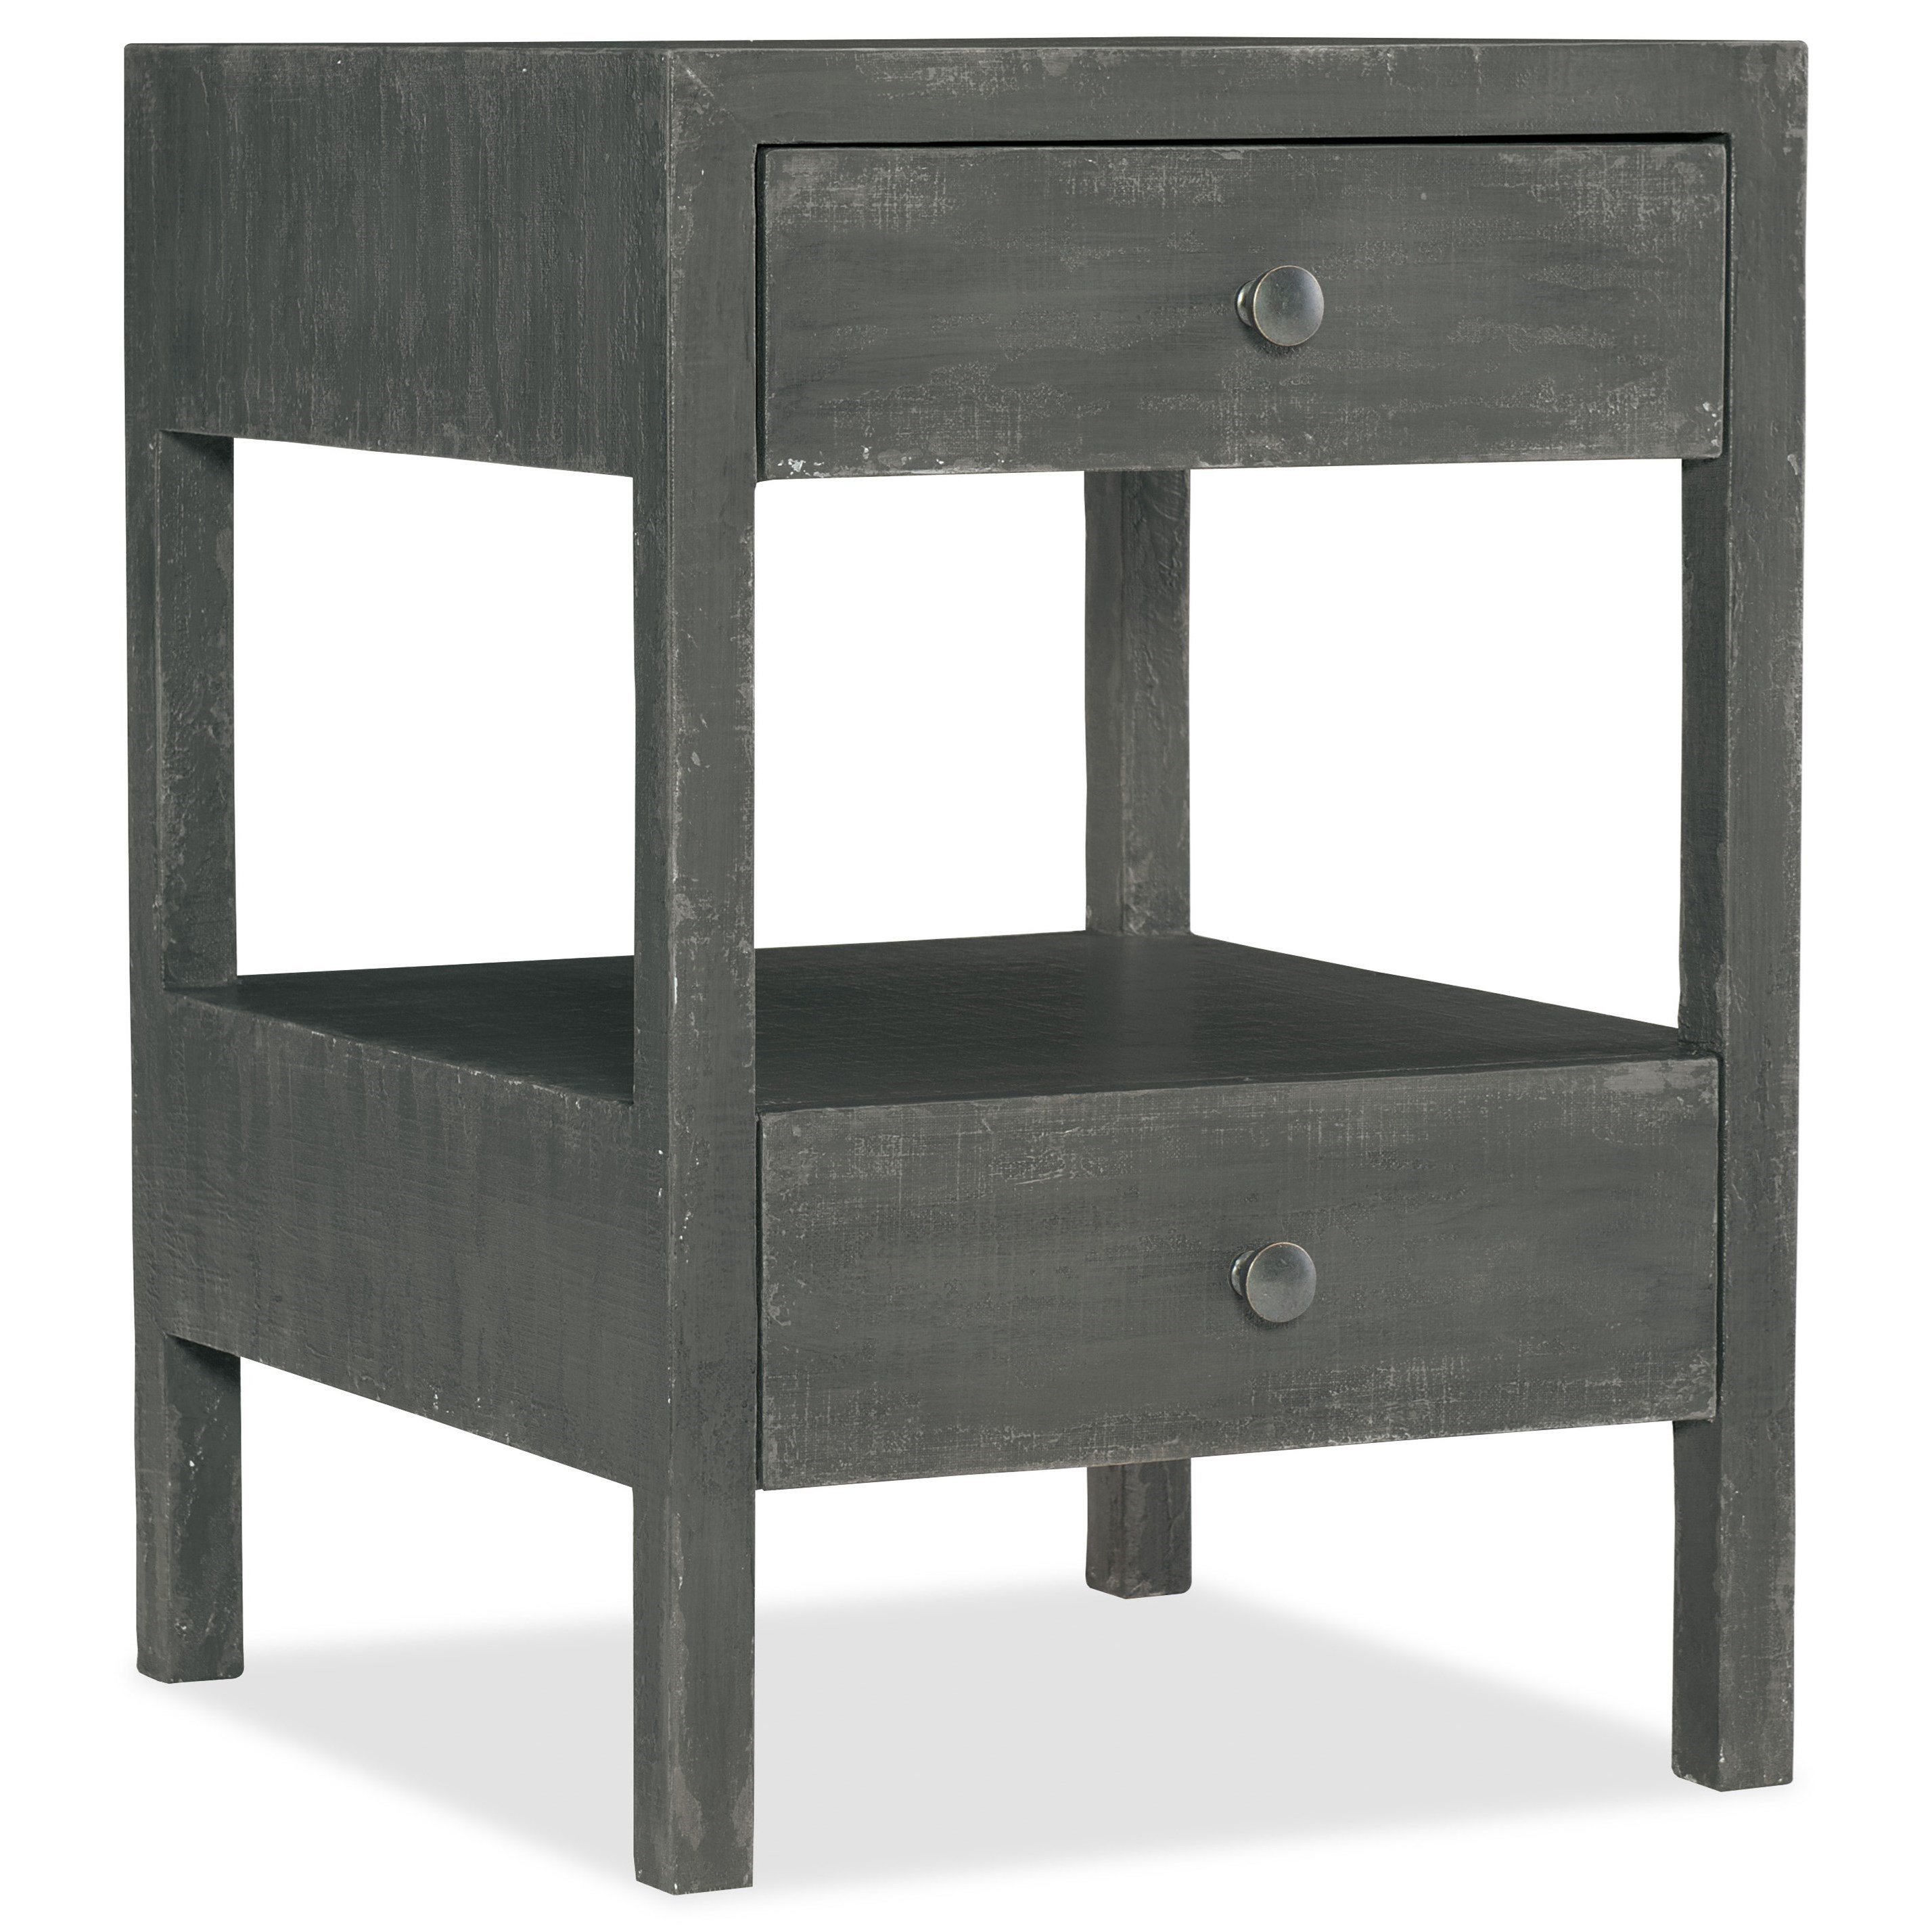 Boheme Brussels Two-Drawer Nightstand by Hooker Furniture at Baer's Furniture